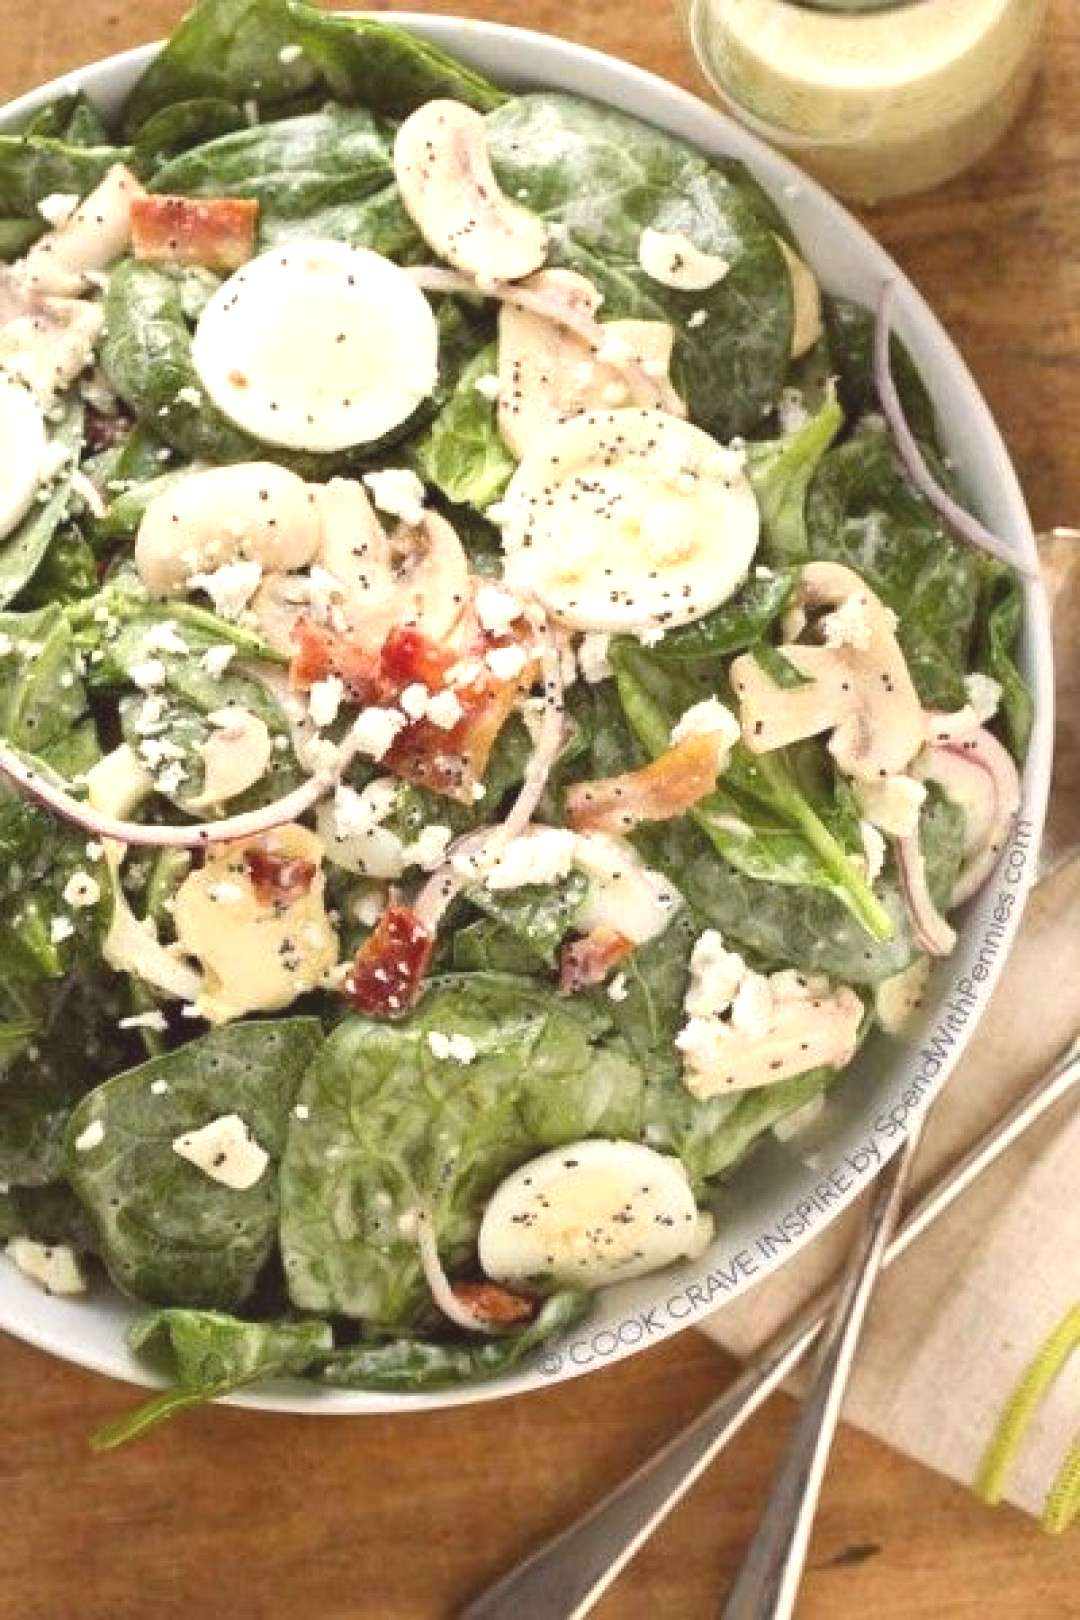 Spinach Salad with Creamy Poppy Seed Dressing - Spend With Pennies,This Classic Spinach Salad... Sp